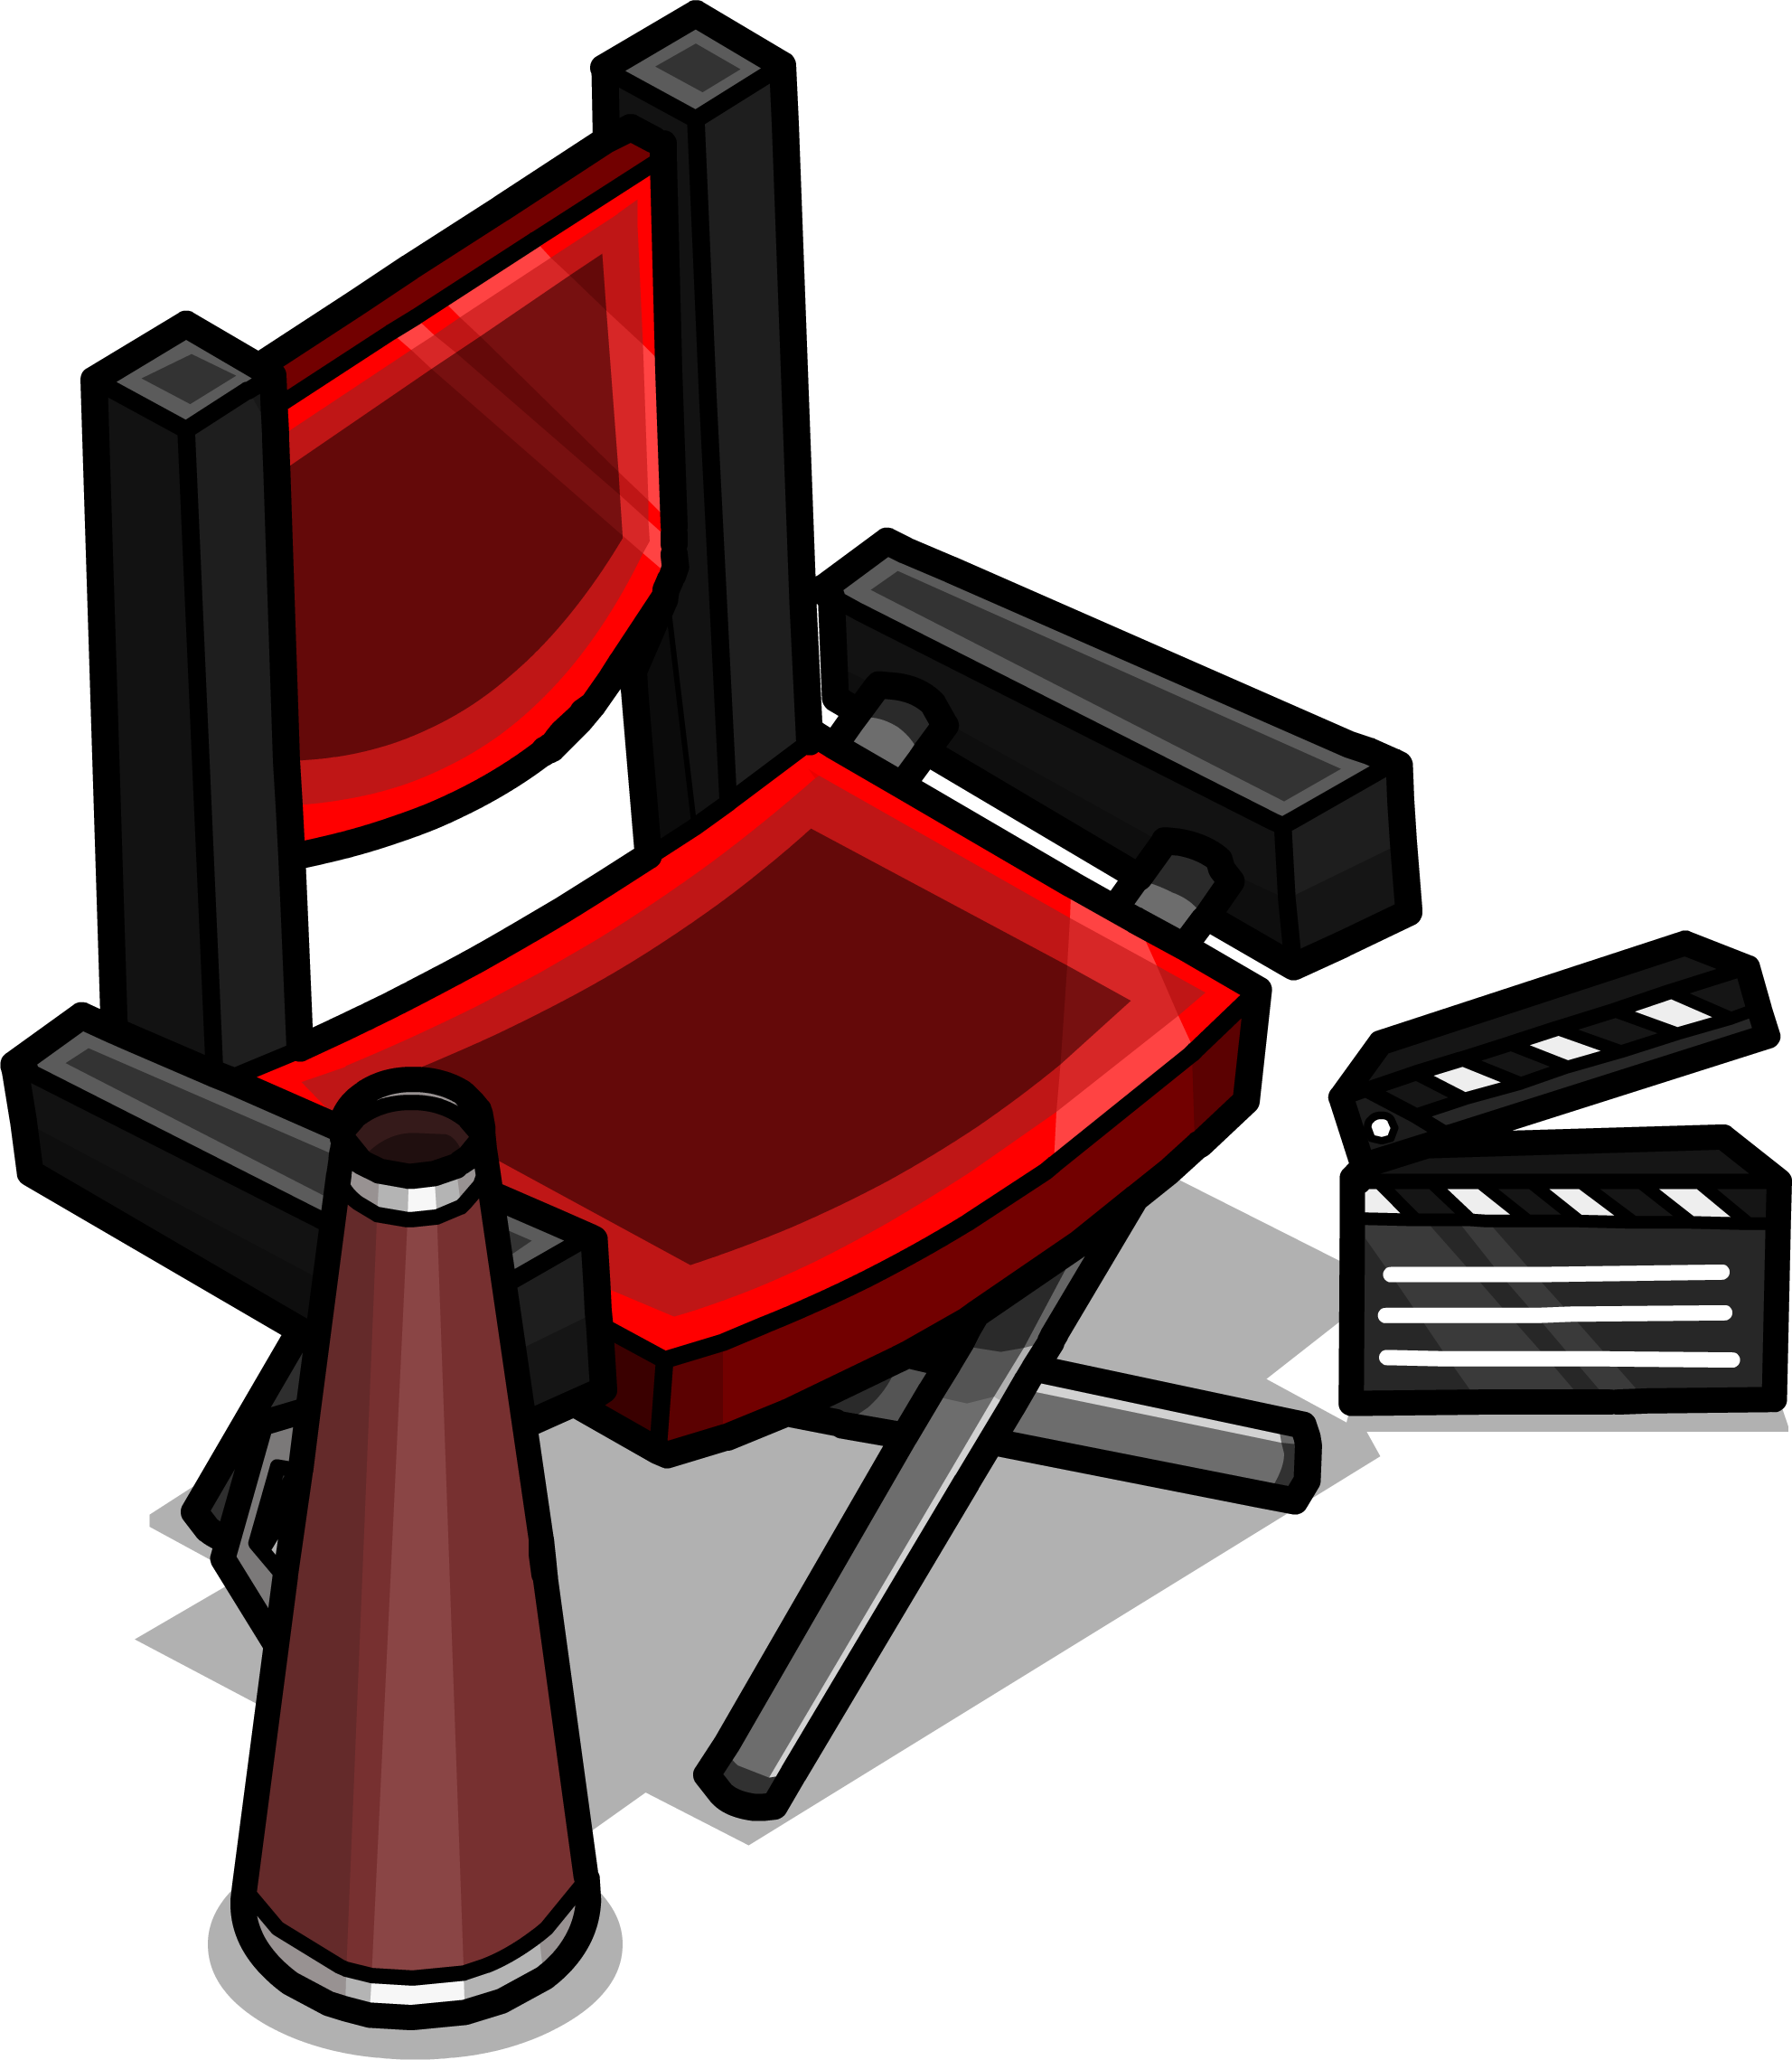 Directors chair png - Director S Chair Sprite 003 Png